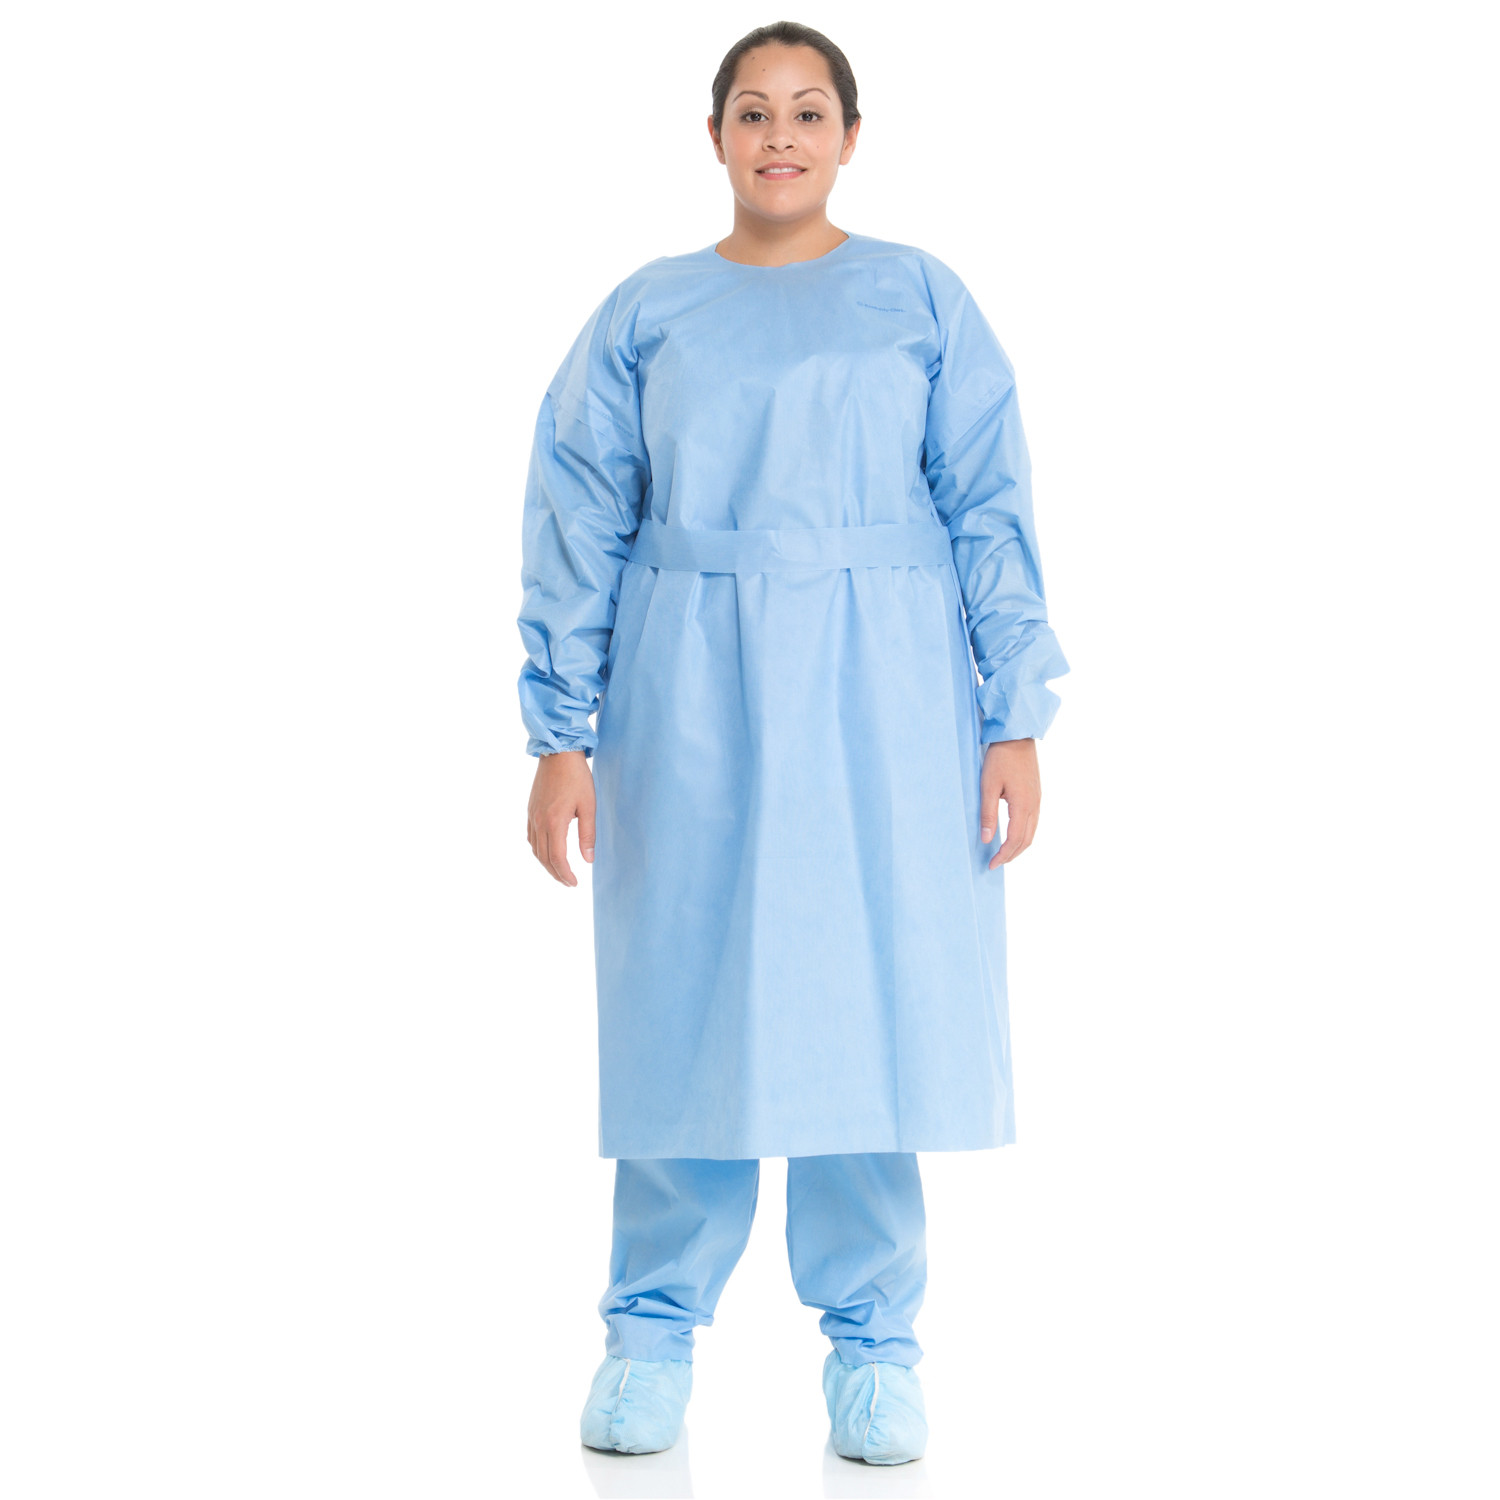 HALYARD Tri-Layer AAMI3 Isolation Gown | Halyard Health UK